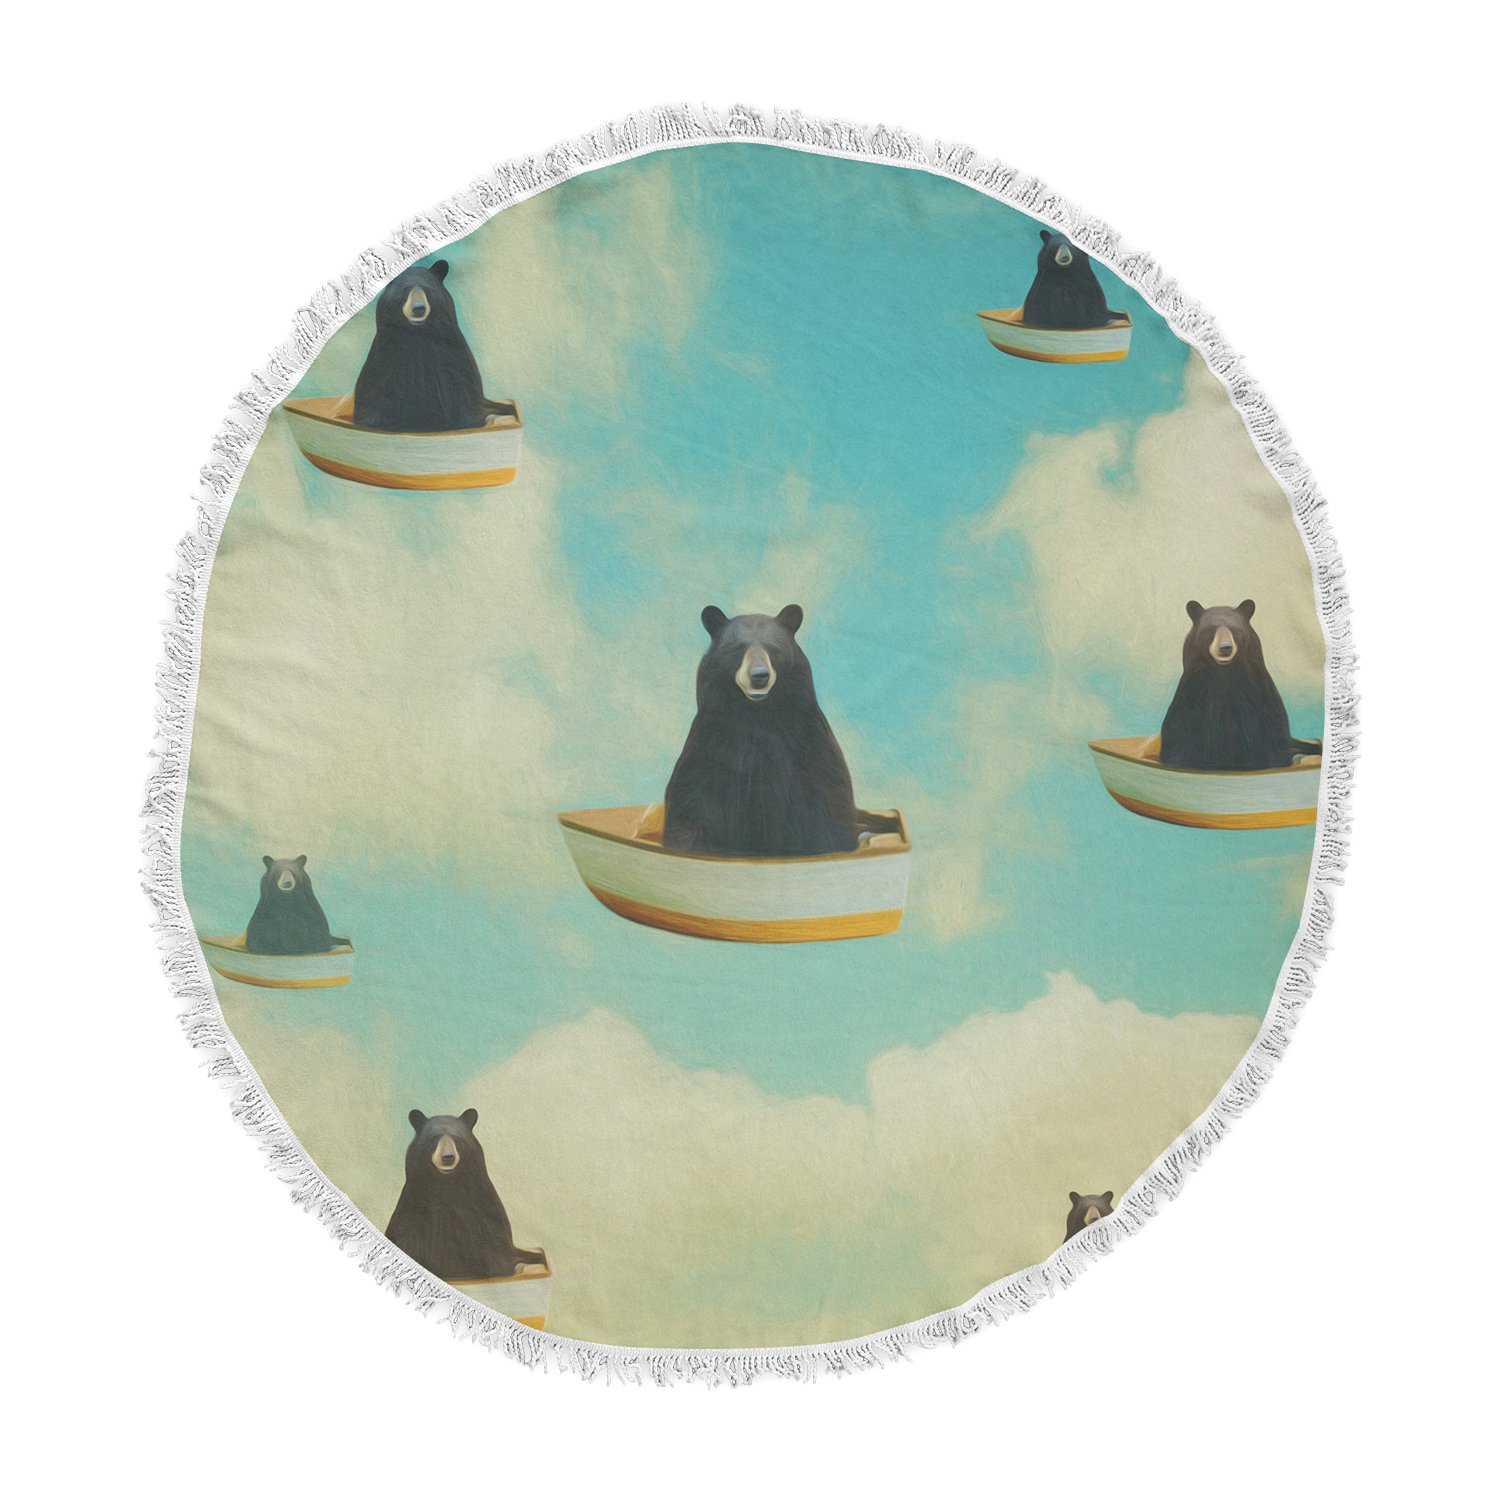 Kess InHouse Natt Bears Floating Animals Round Beach Towel Blanket